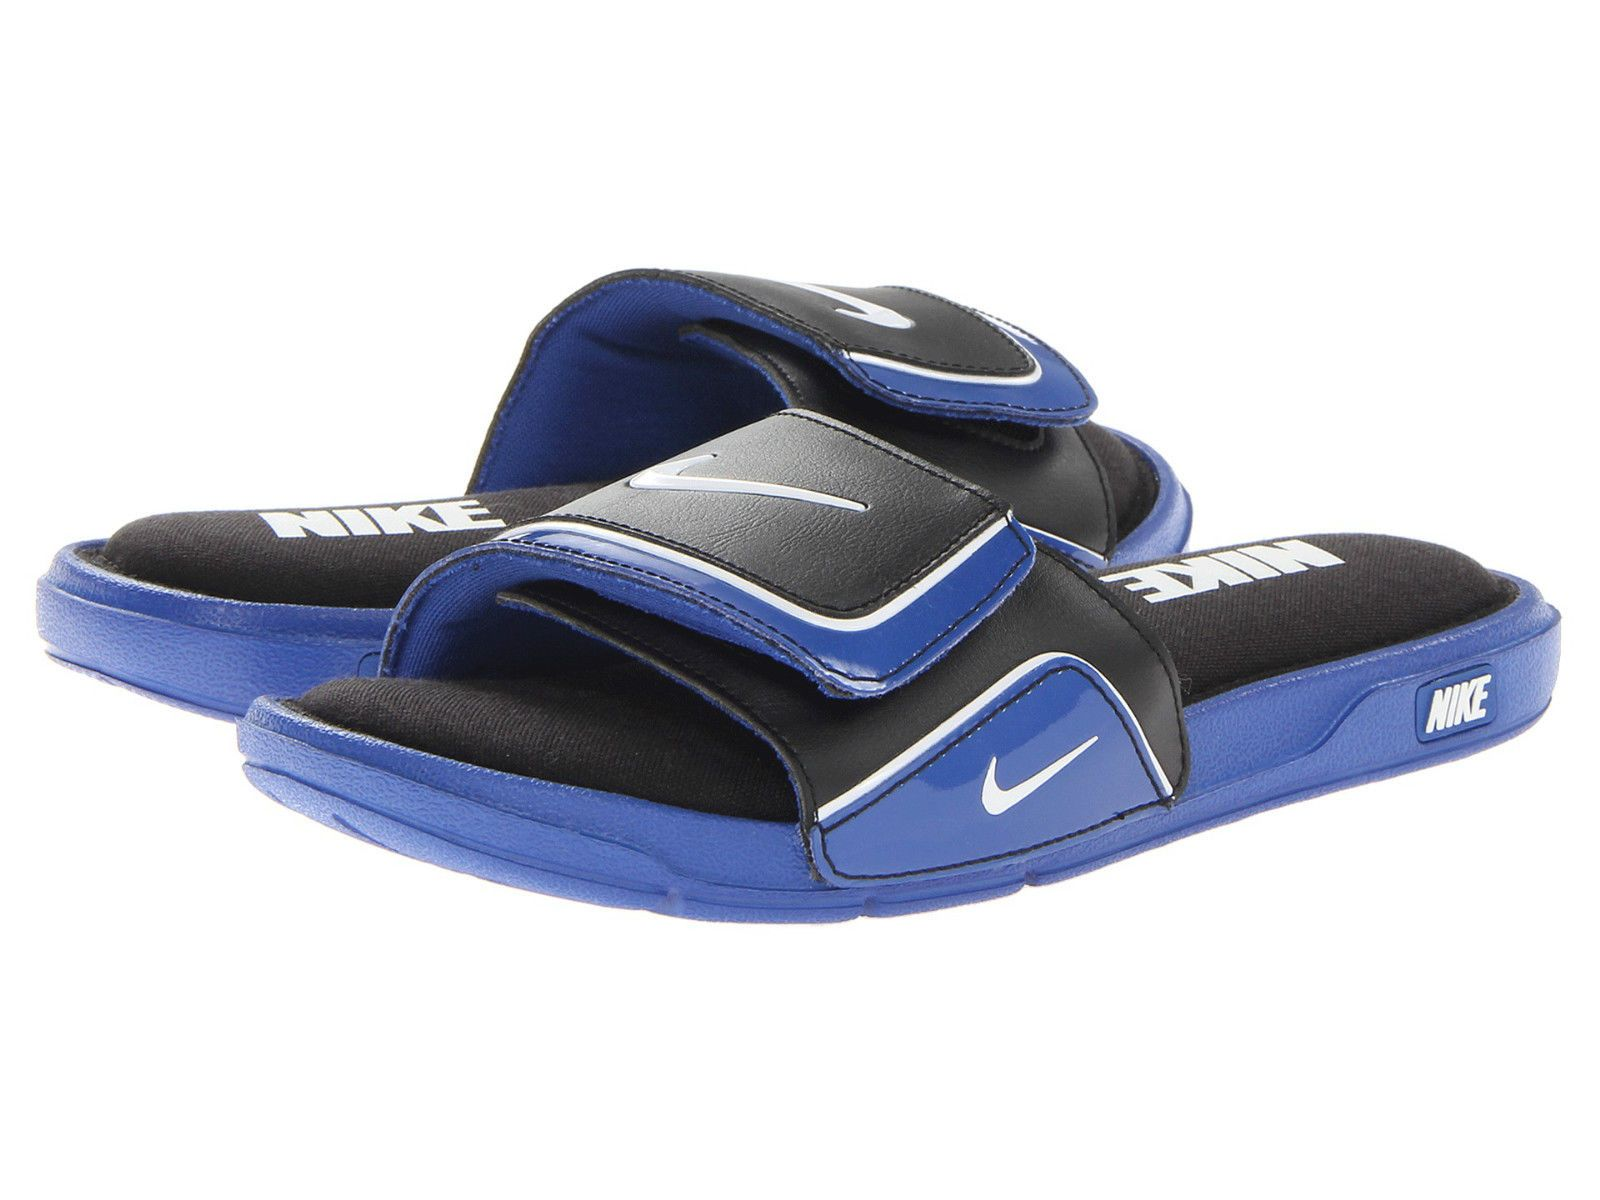 men size pin comforter nike comfort slide new sandals